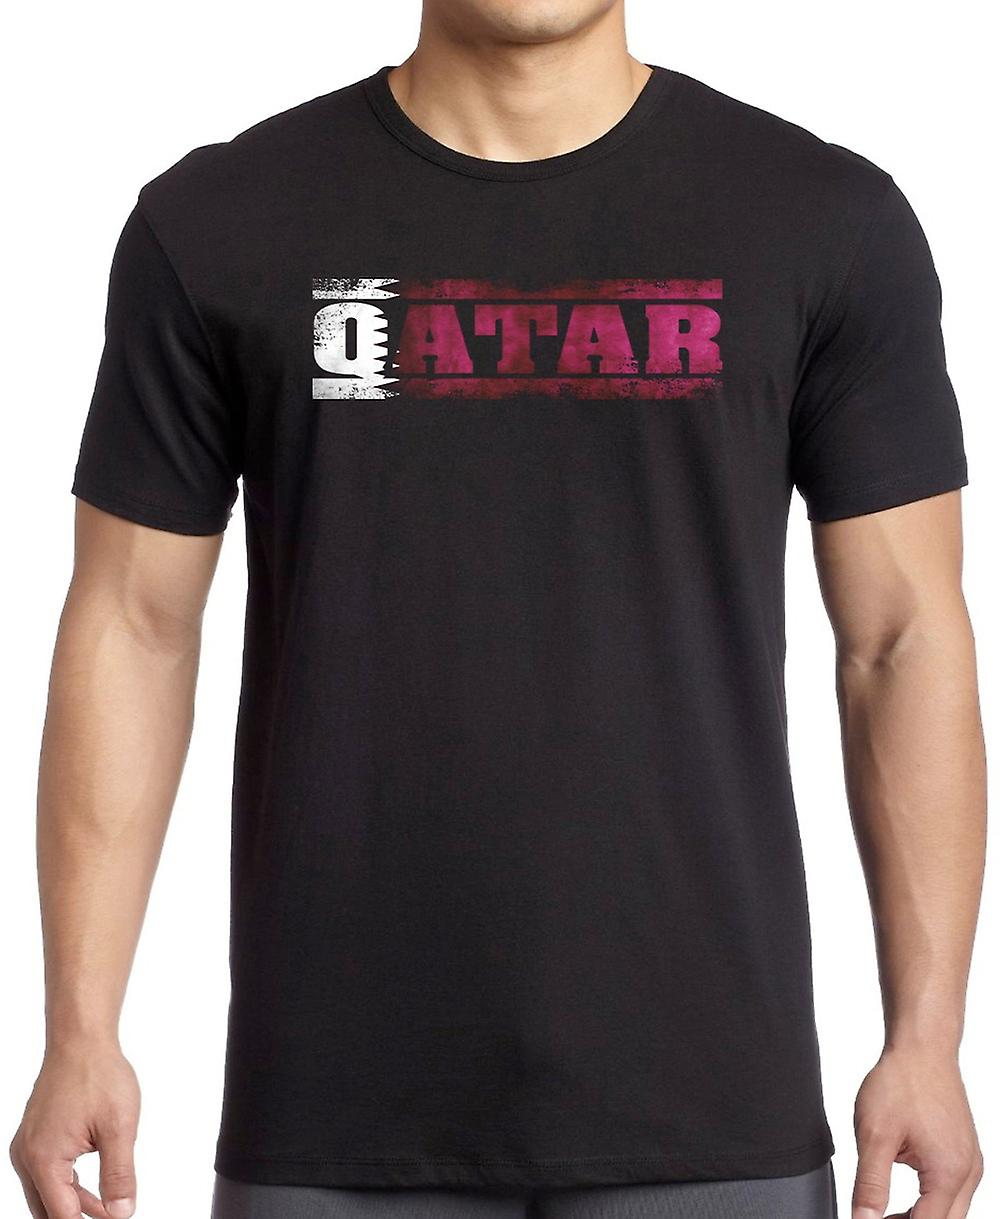 Qatars flagga - ord T Shirt